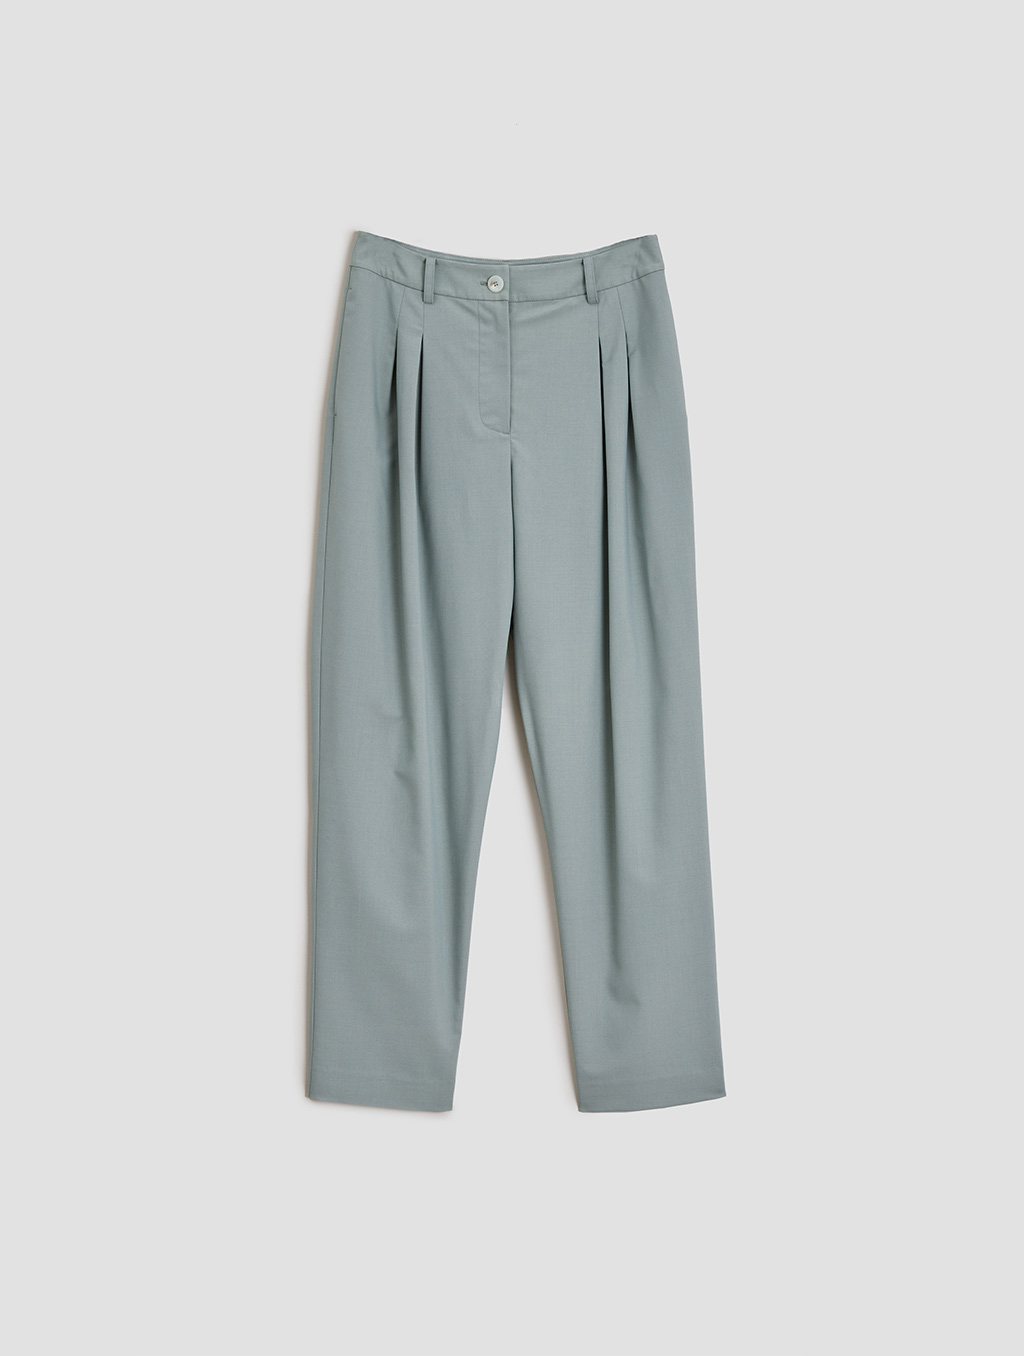 Ankle length Tapered pants- Tiled-Pale green